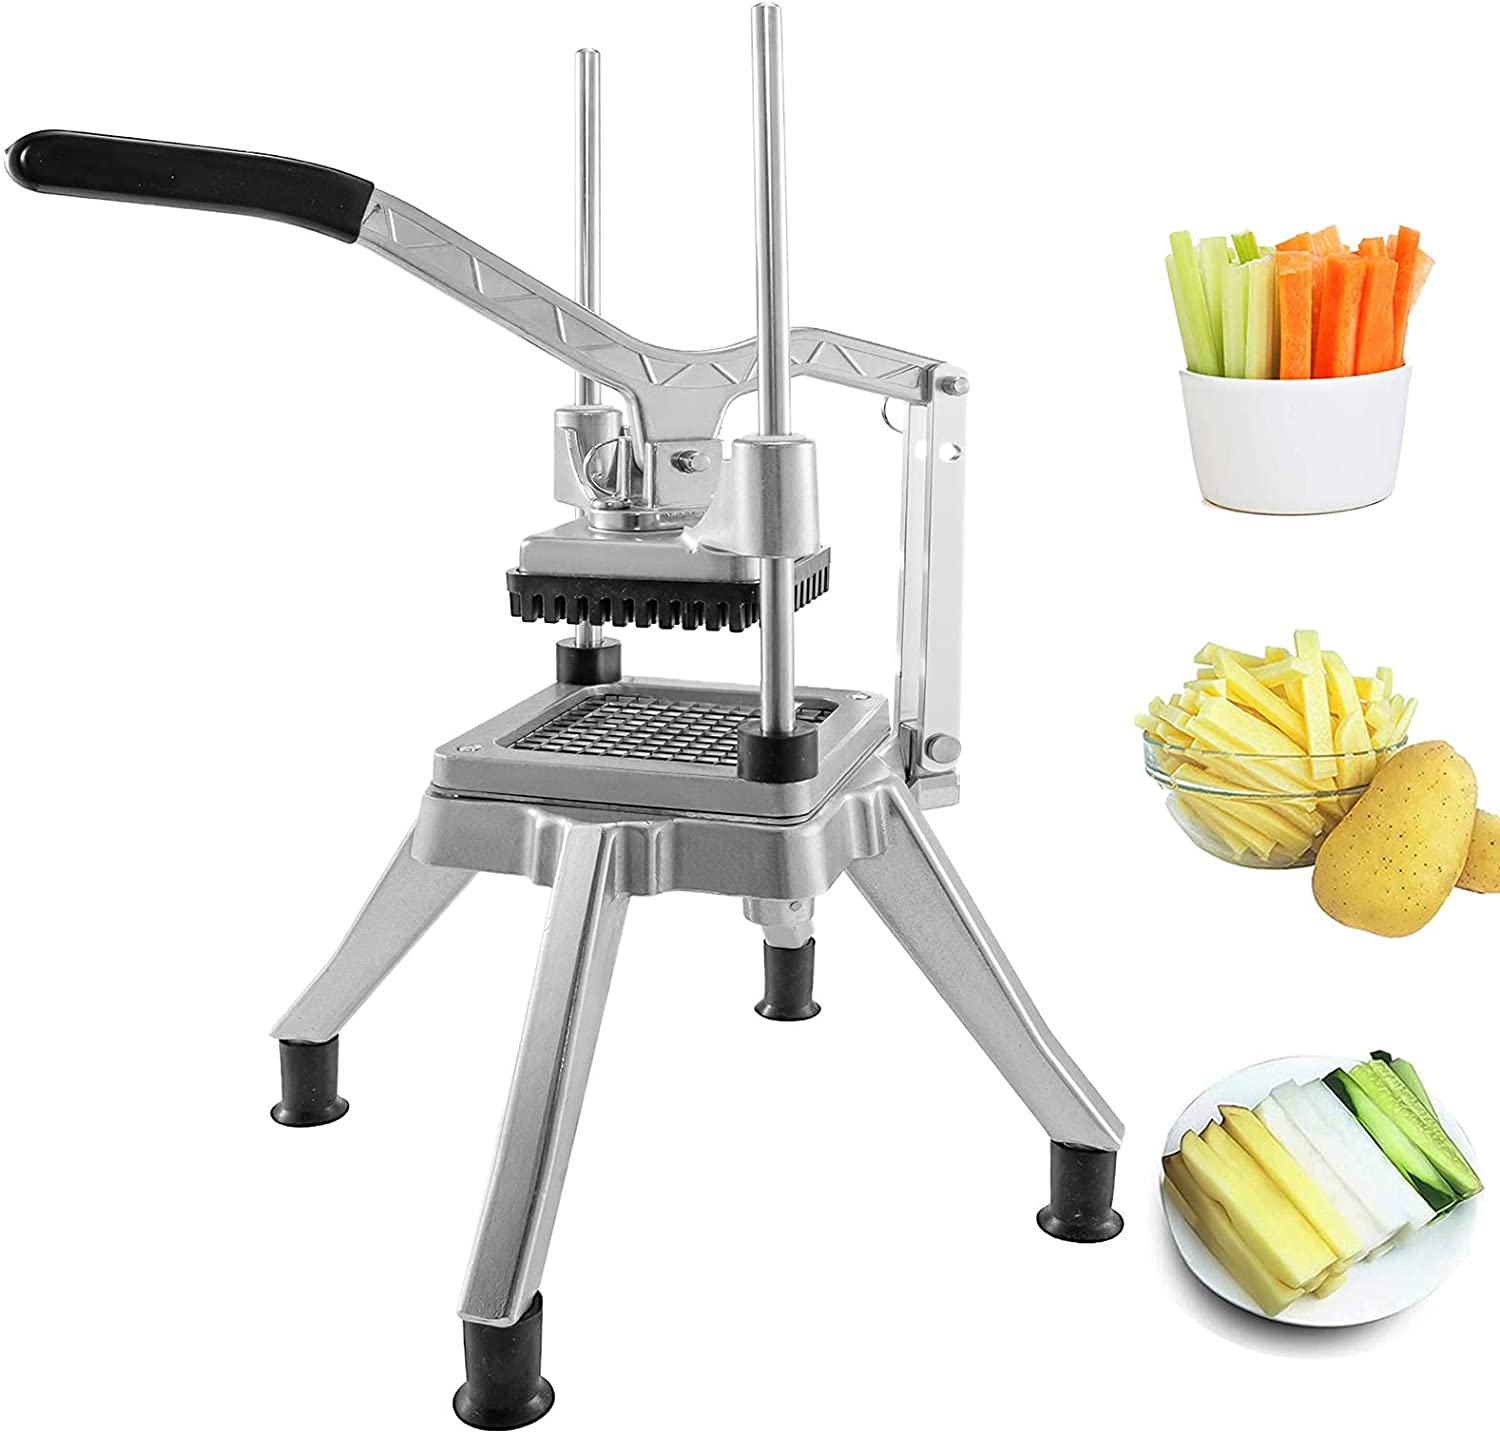 Commercial Food Chopper, Professional French Fry Cutter Multifunctional Heavy Duty Vegetable Fruit Chopper Dicer with 1/4